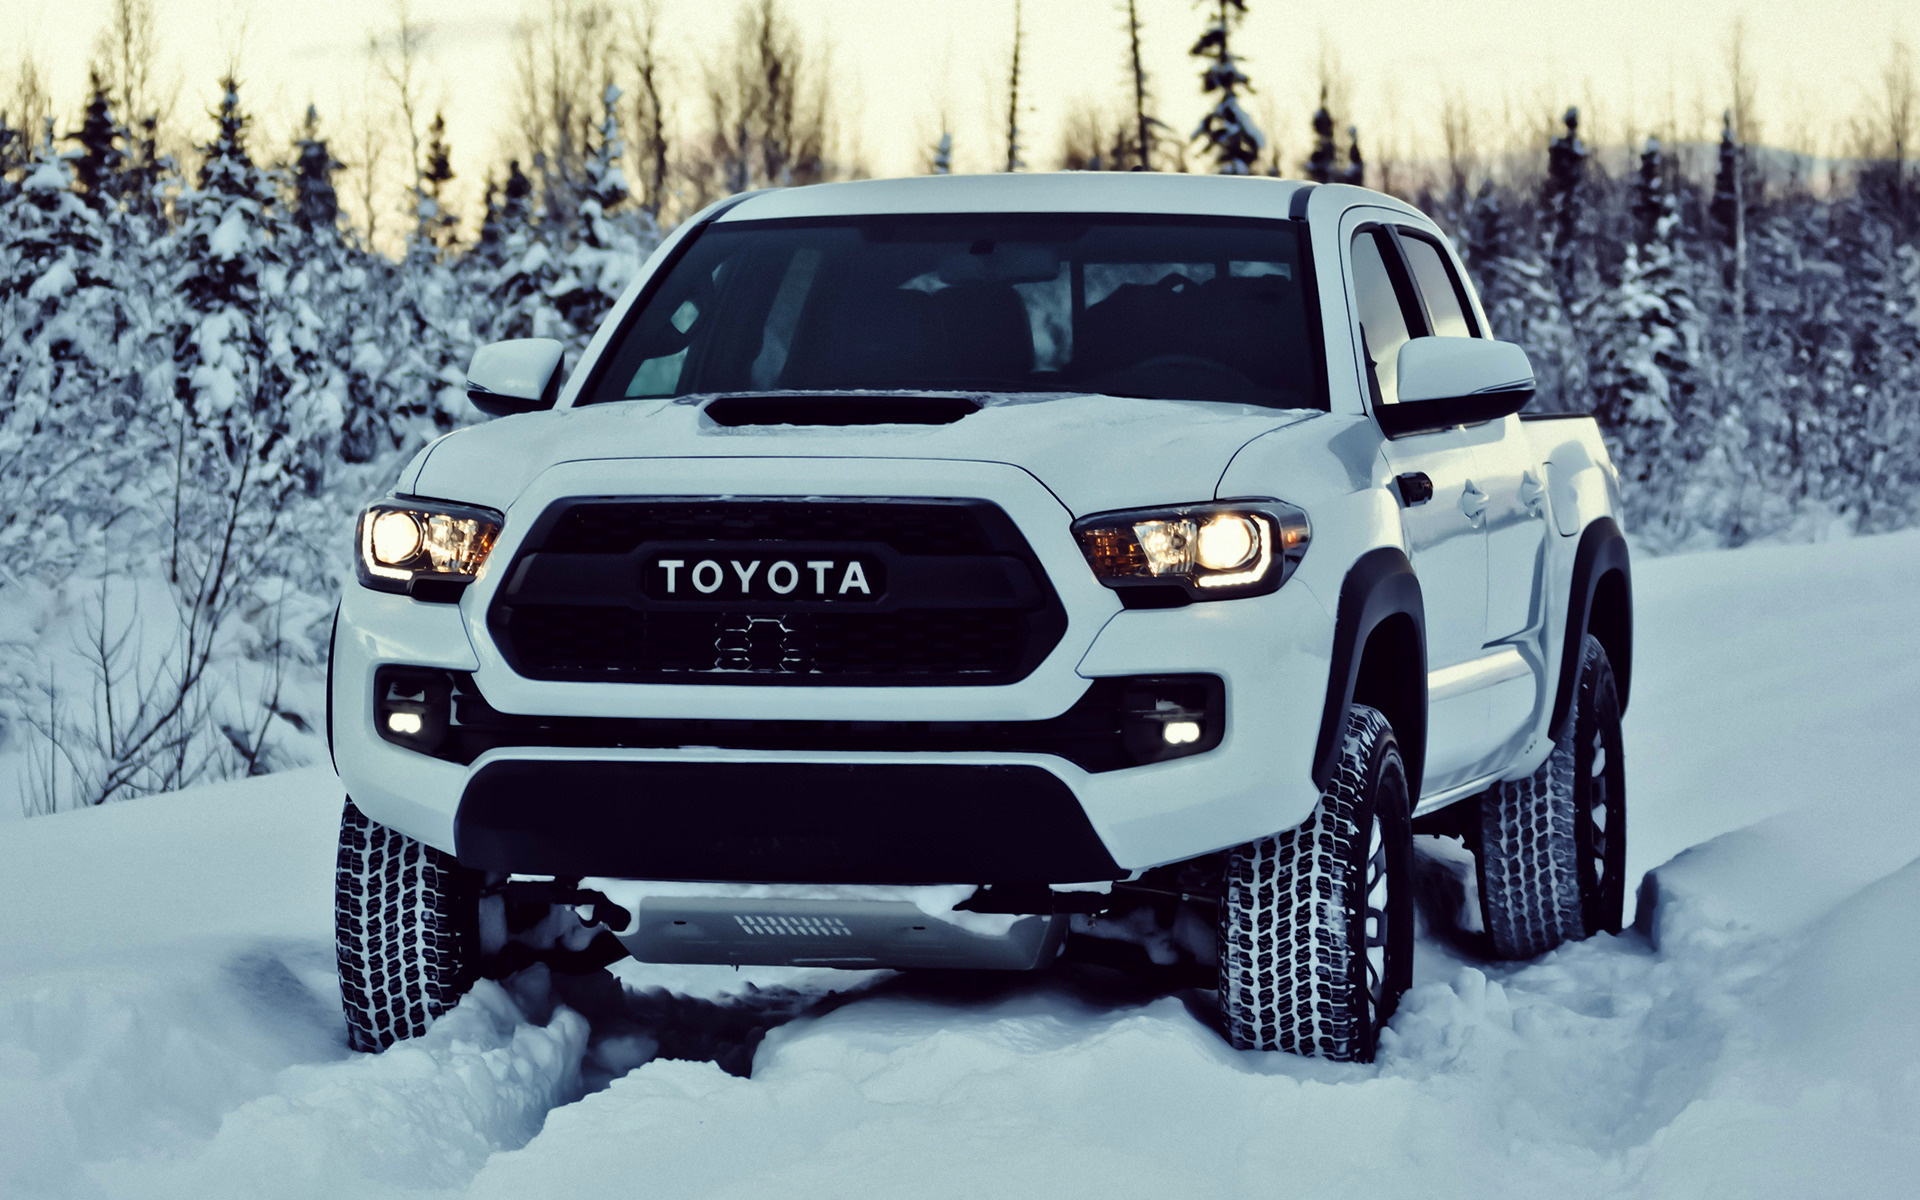 2016 Toyota Tacoma Access Cab >> 2017 Toyota Tacoma TRD Pro Double Cab - Wallpapers and HD ...